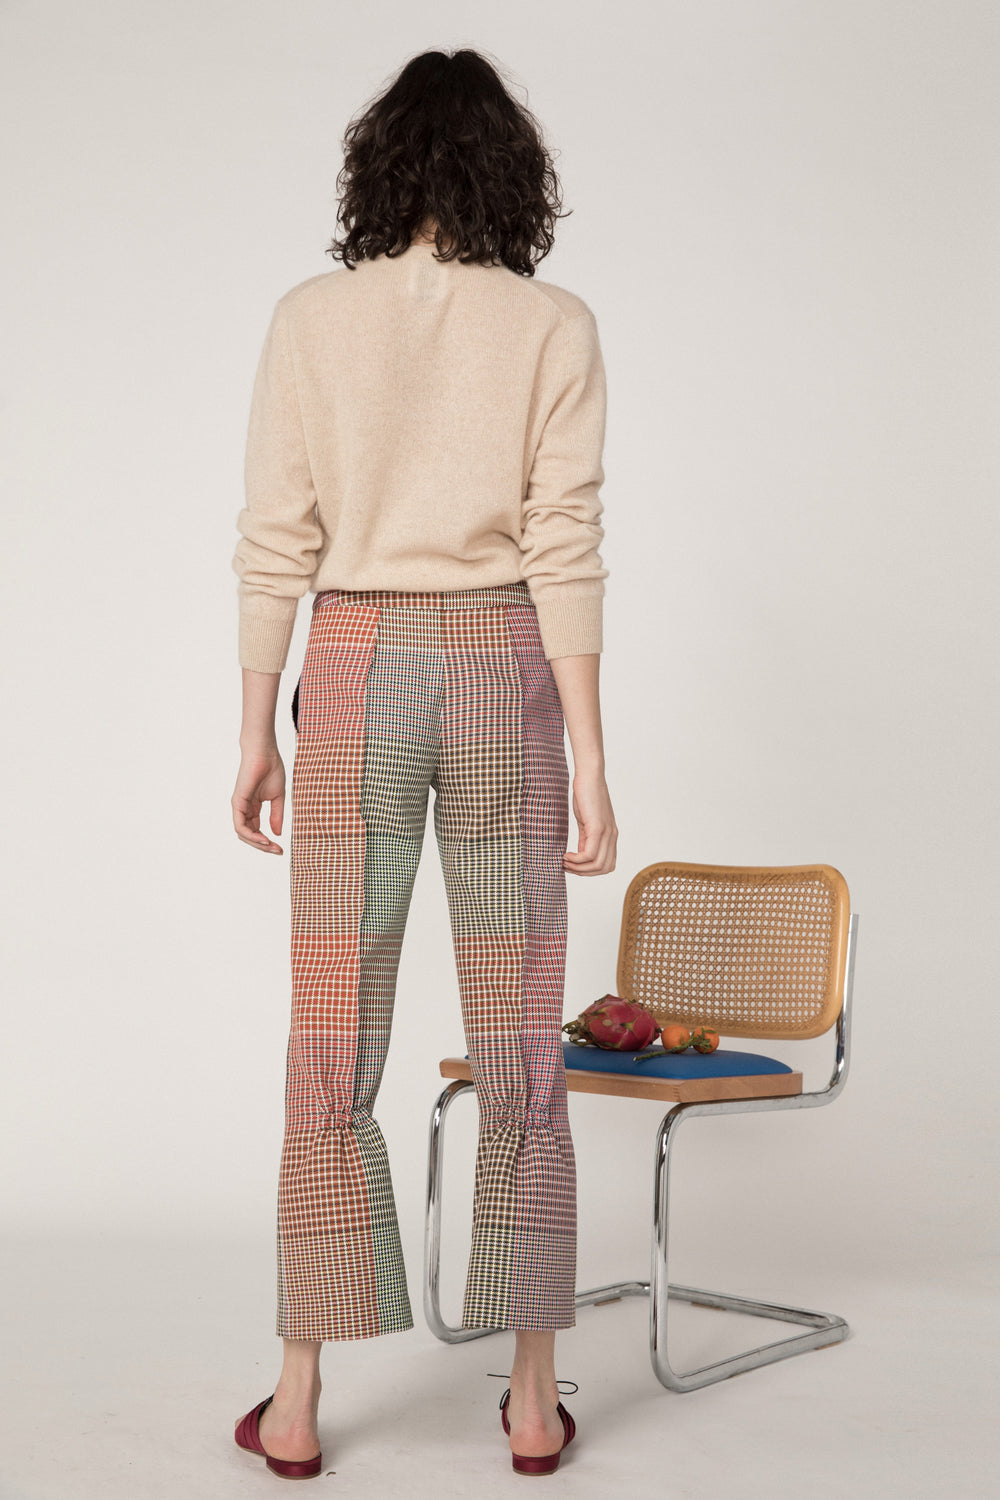 Rosie Assoulin Pre-Fall 2019 Scrunchy Pant. Straight leg cropped pant. Elastic behind the knee. Soft flare. Pockets. Multicolored plaid. 100% Polyester. Sizes 0 - 12.